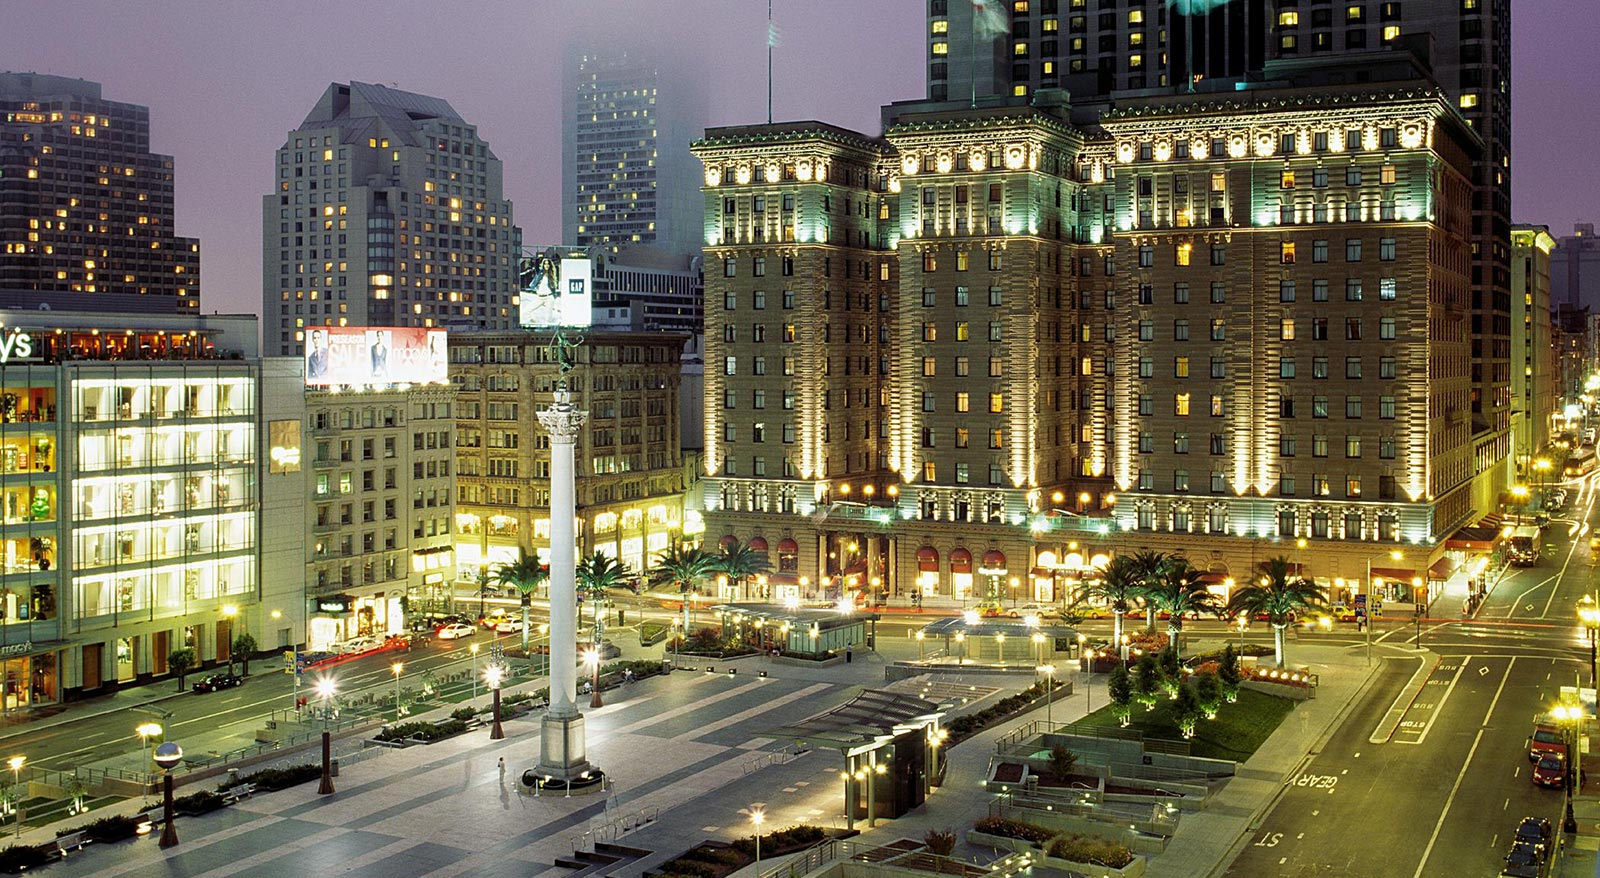 Hotel Westin St Francis, Union Square, San Francisco